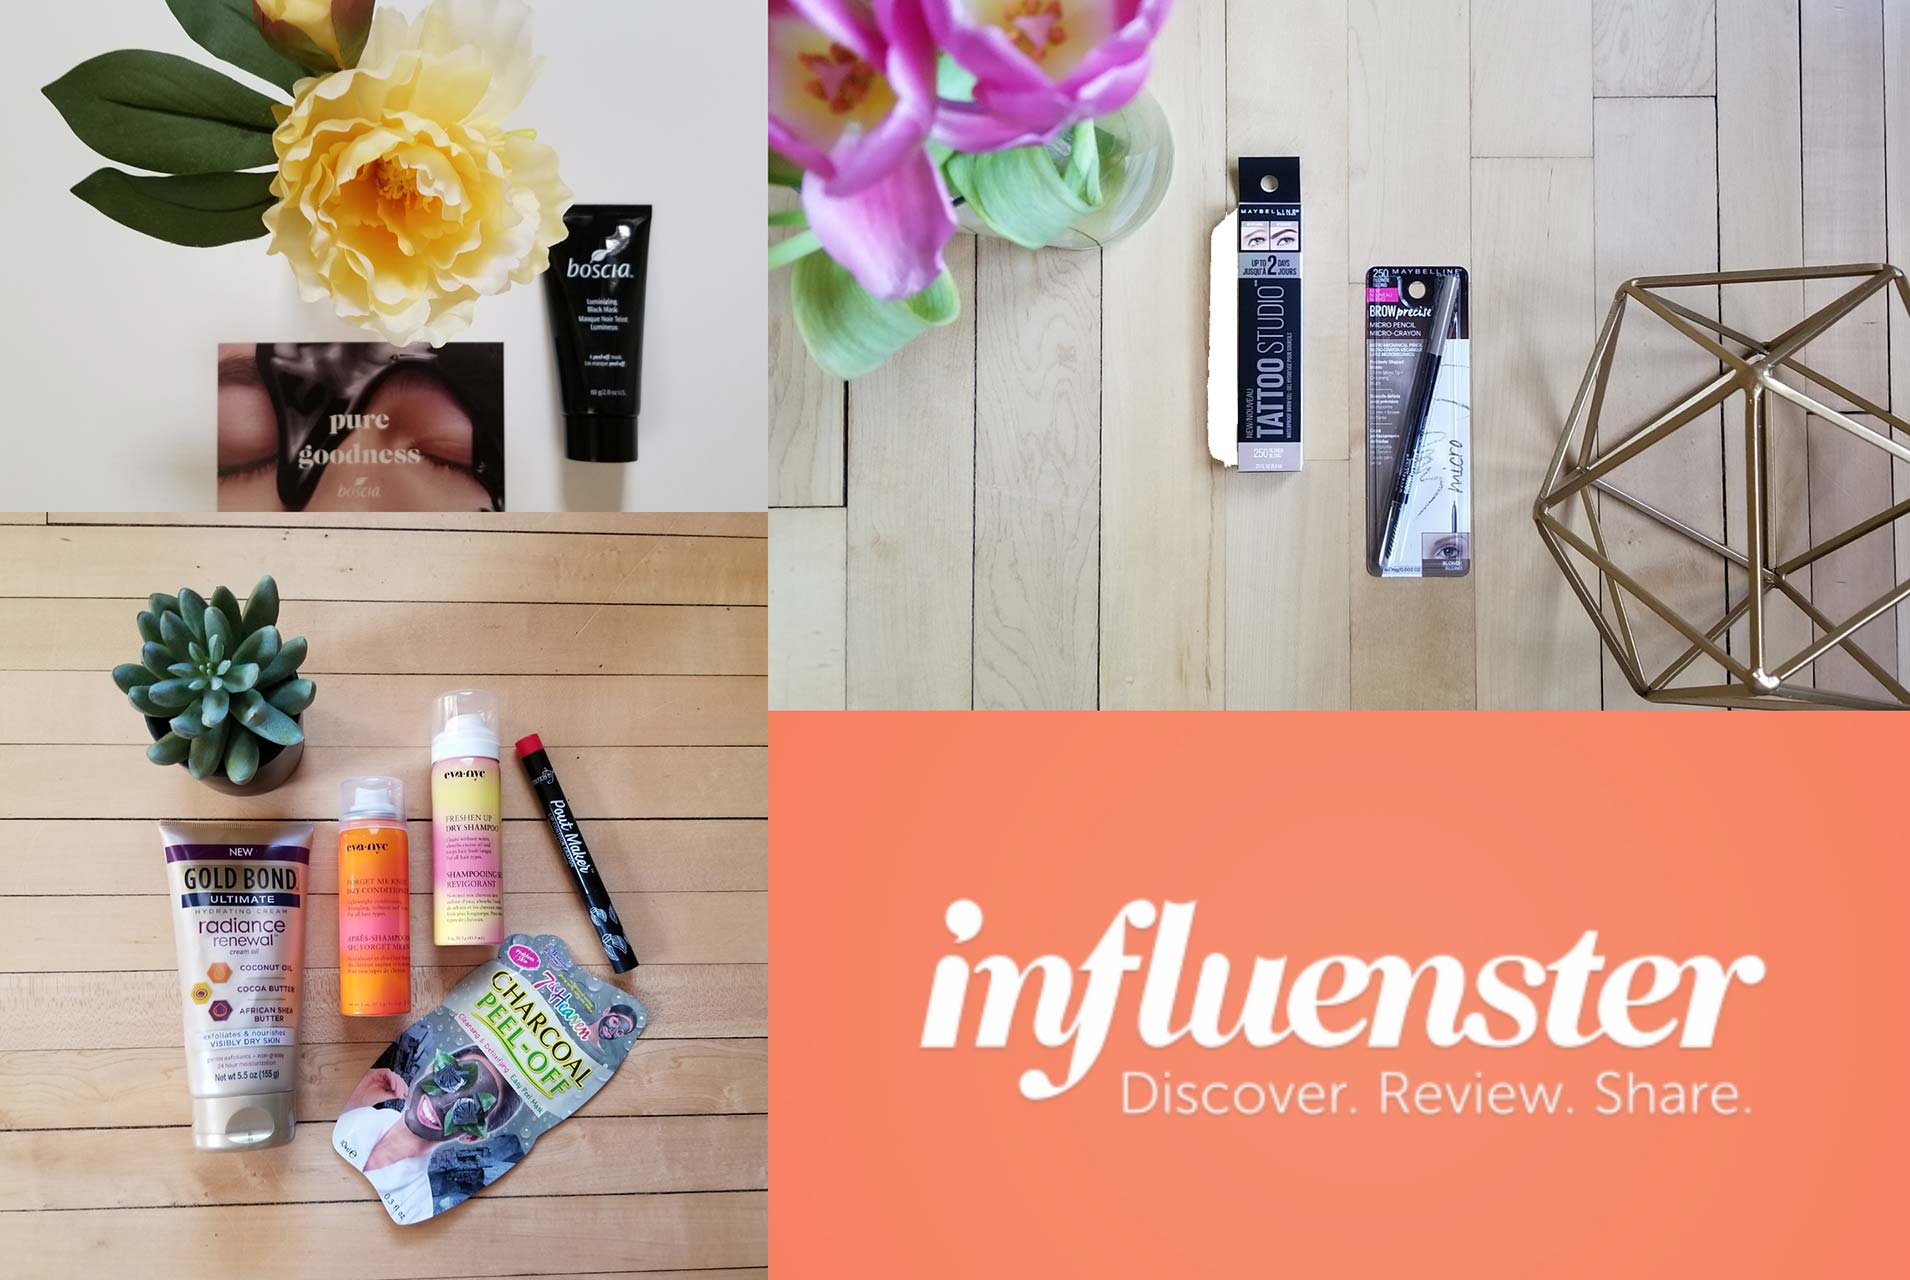 Free Beauty Products Influenster Vox Box